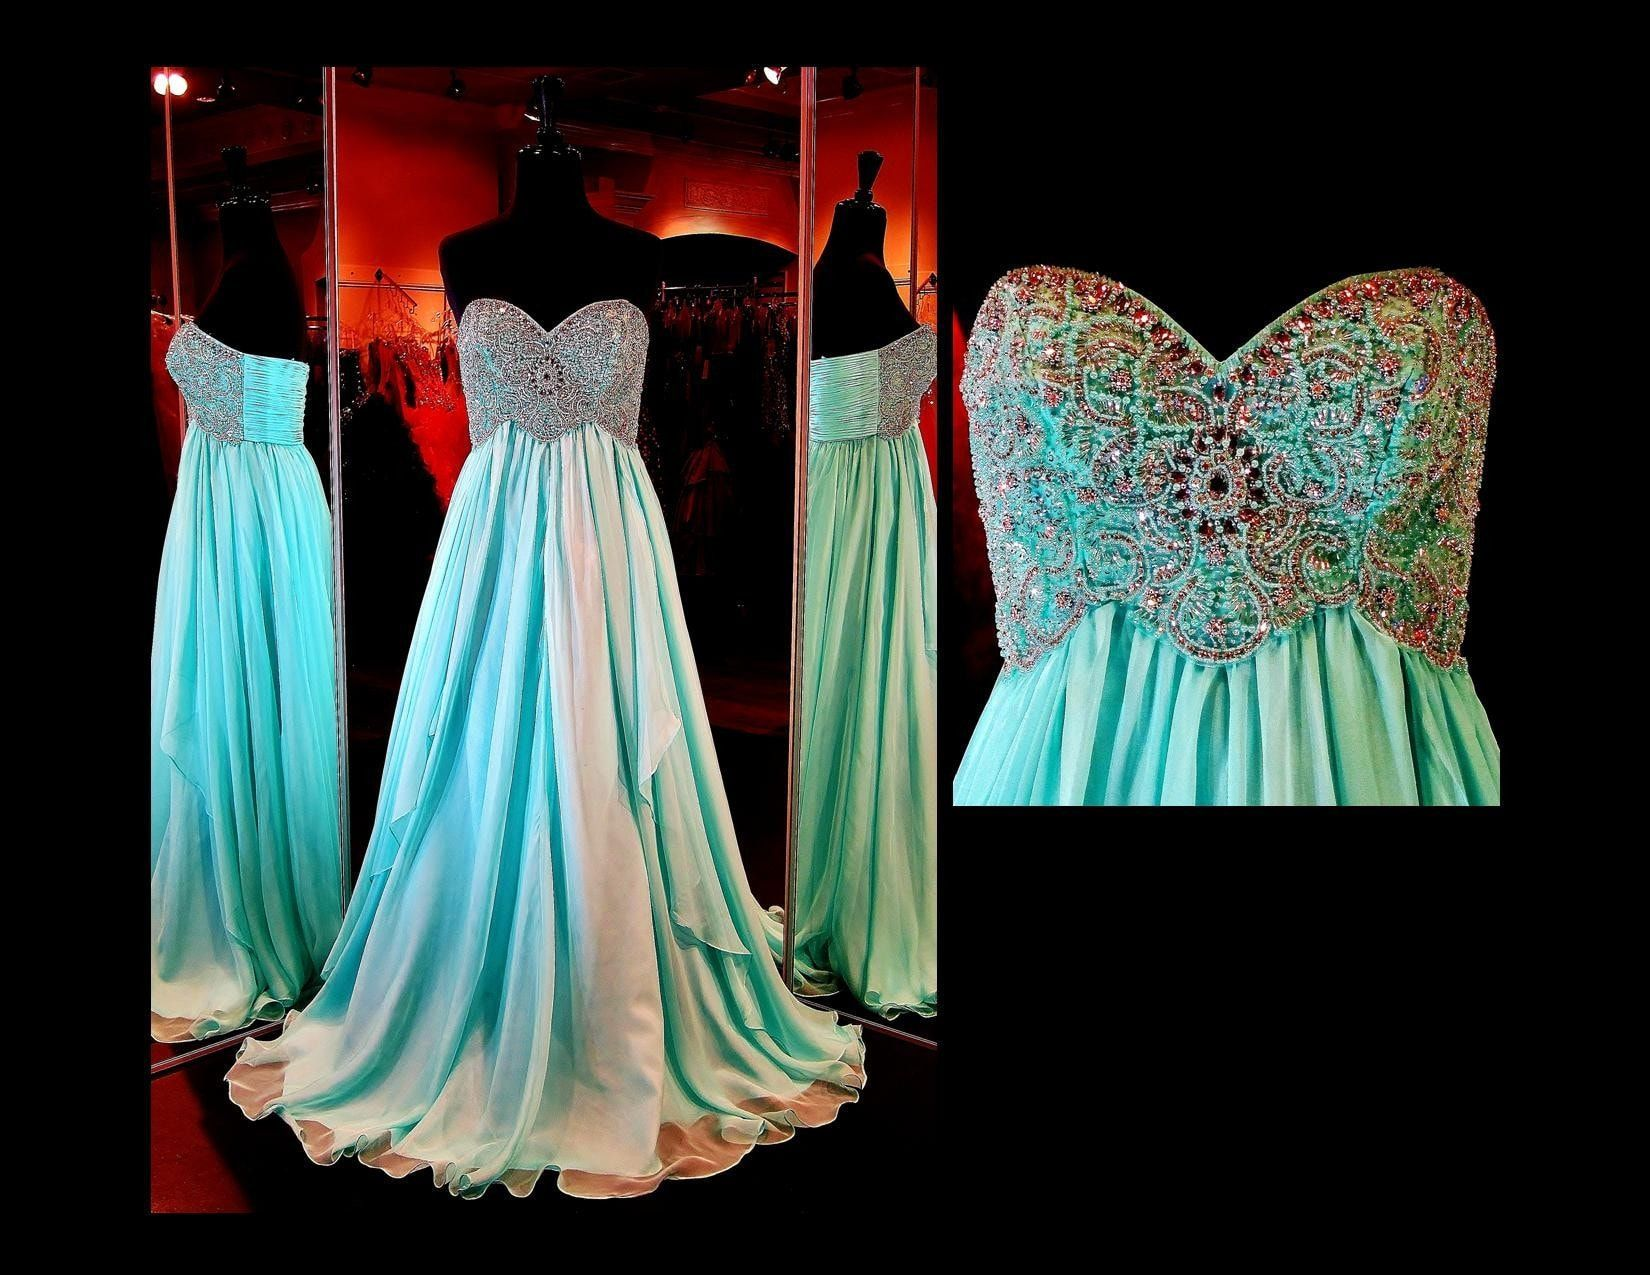 Aqua Chiffon Sweetheart Evening Gown / Prom dresses Atlanta, GA ...